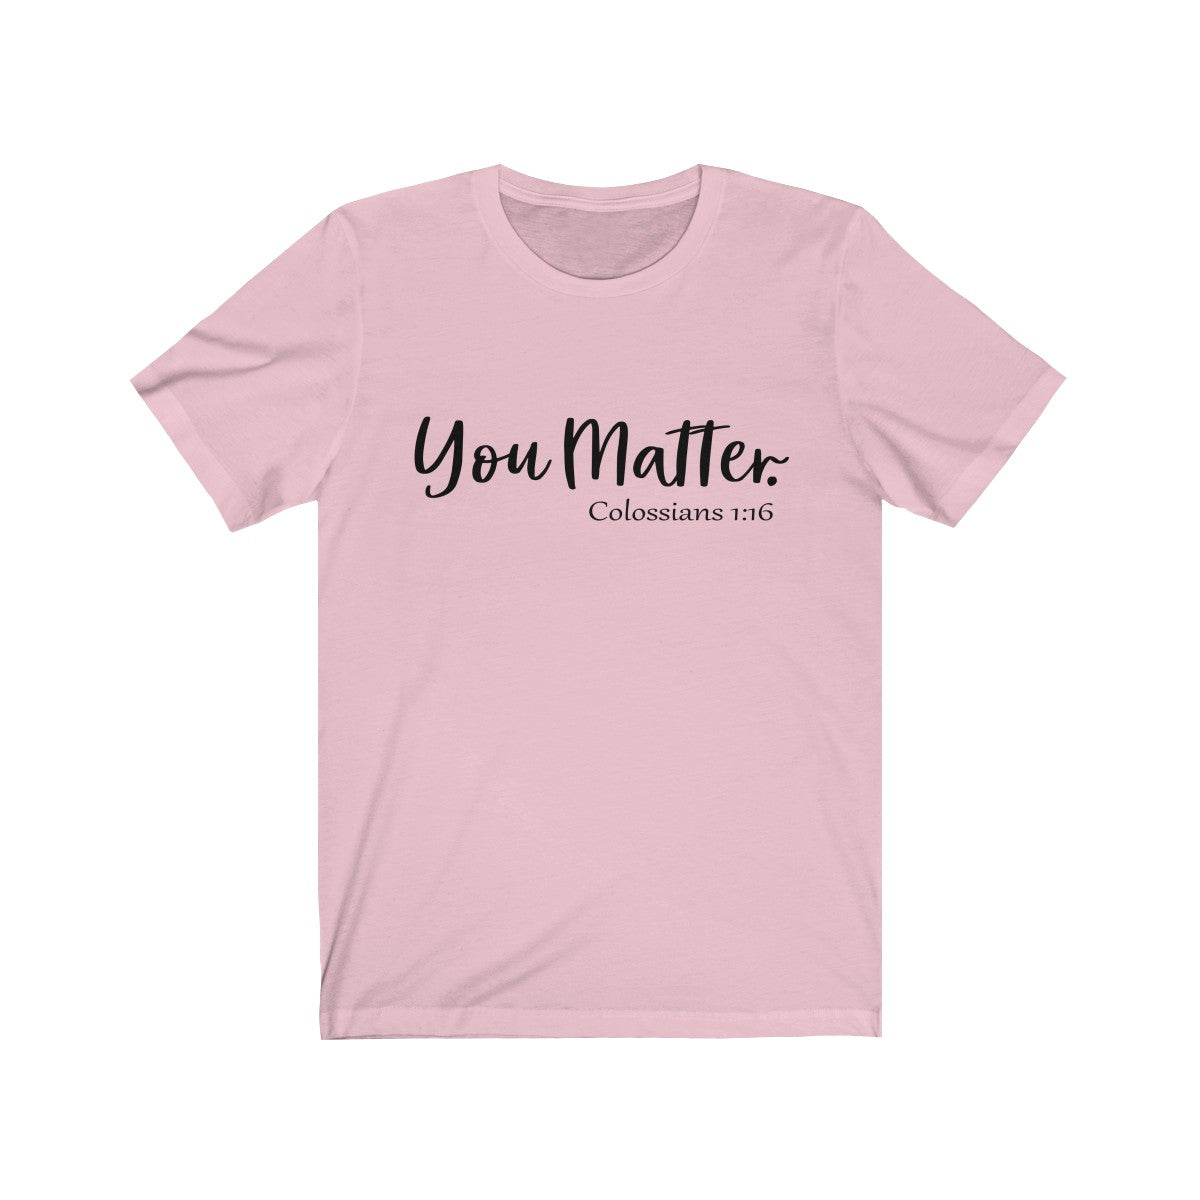 You Matter Unisex Short Sleeve Tee